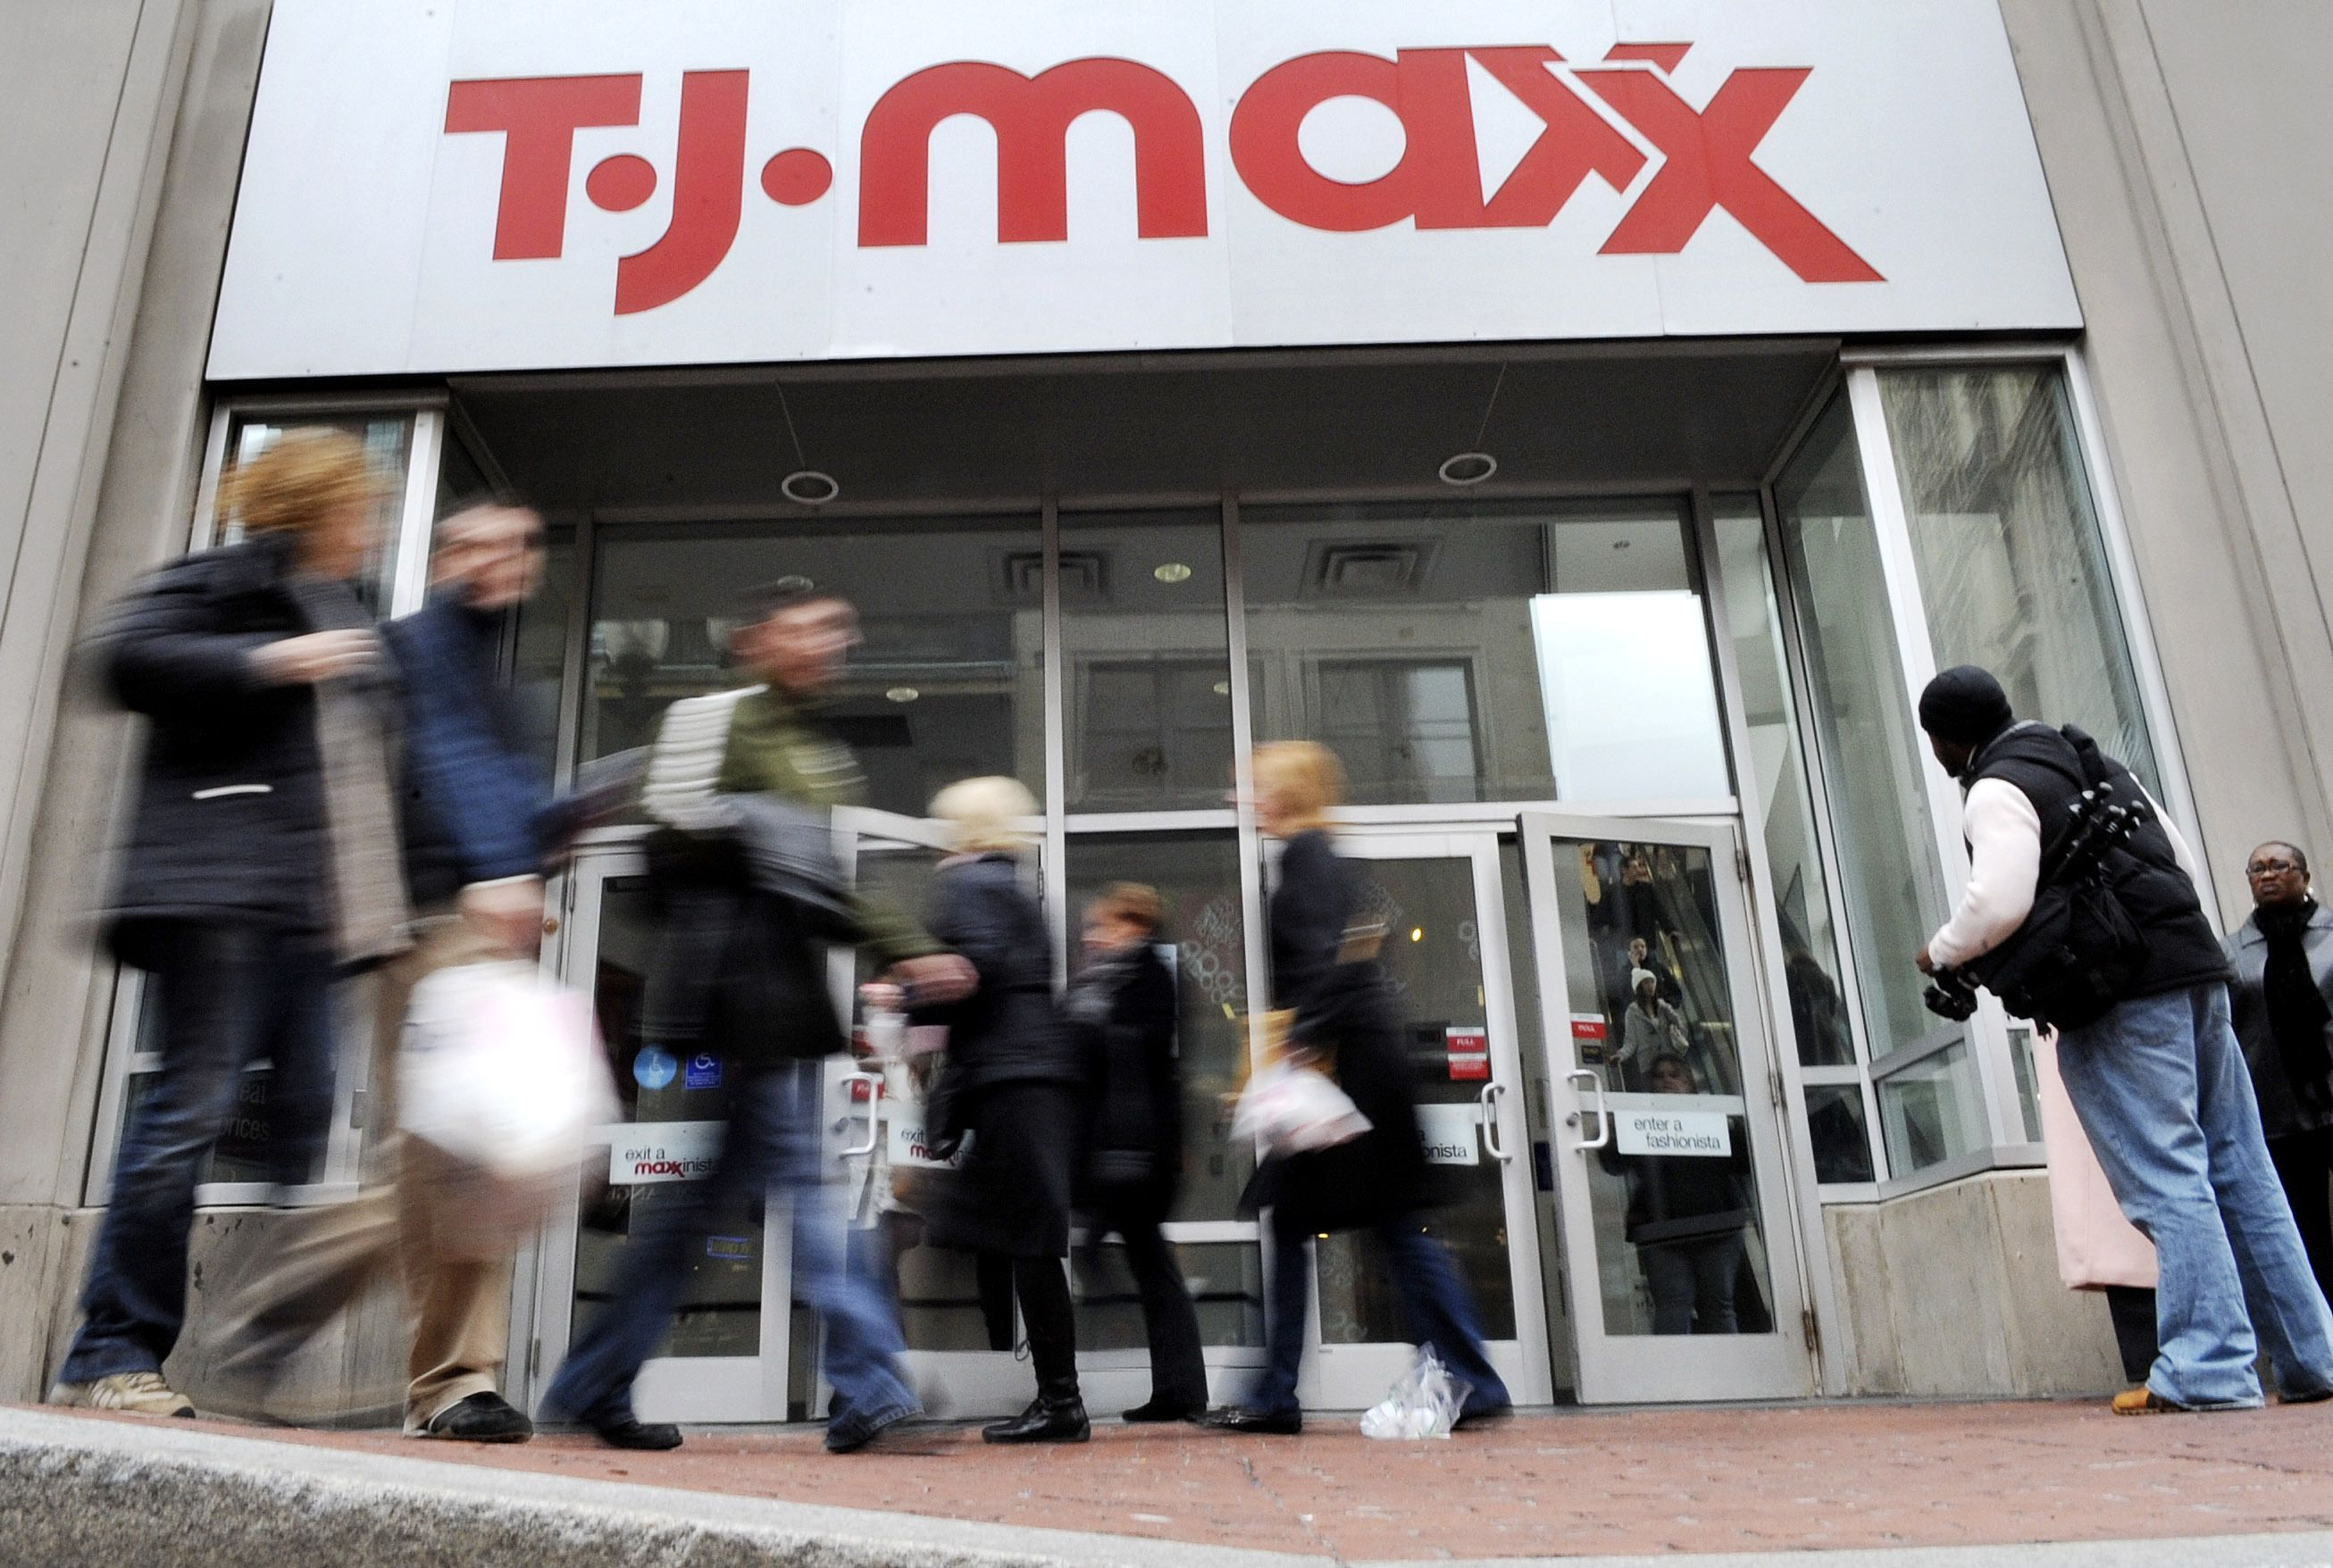 That $9 99 find at T J  Maxx? It might raise questions about